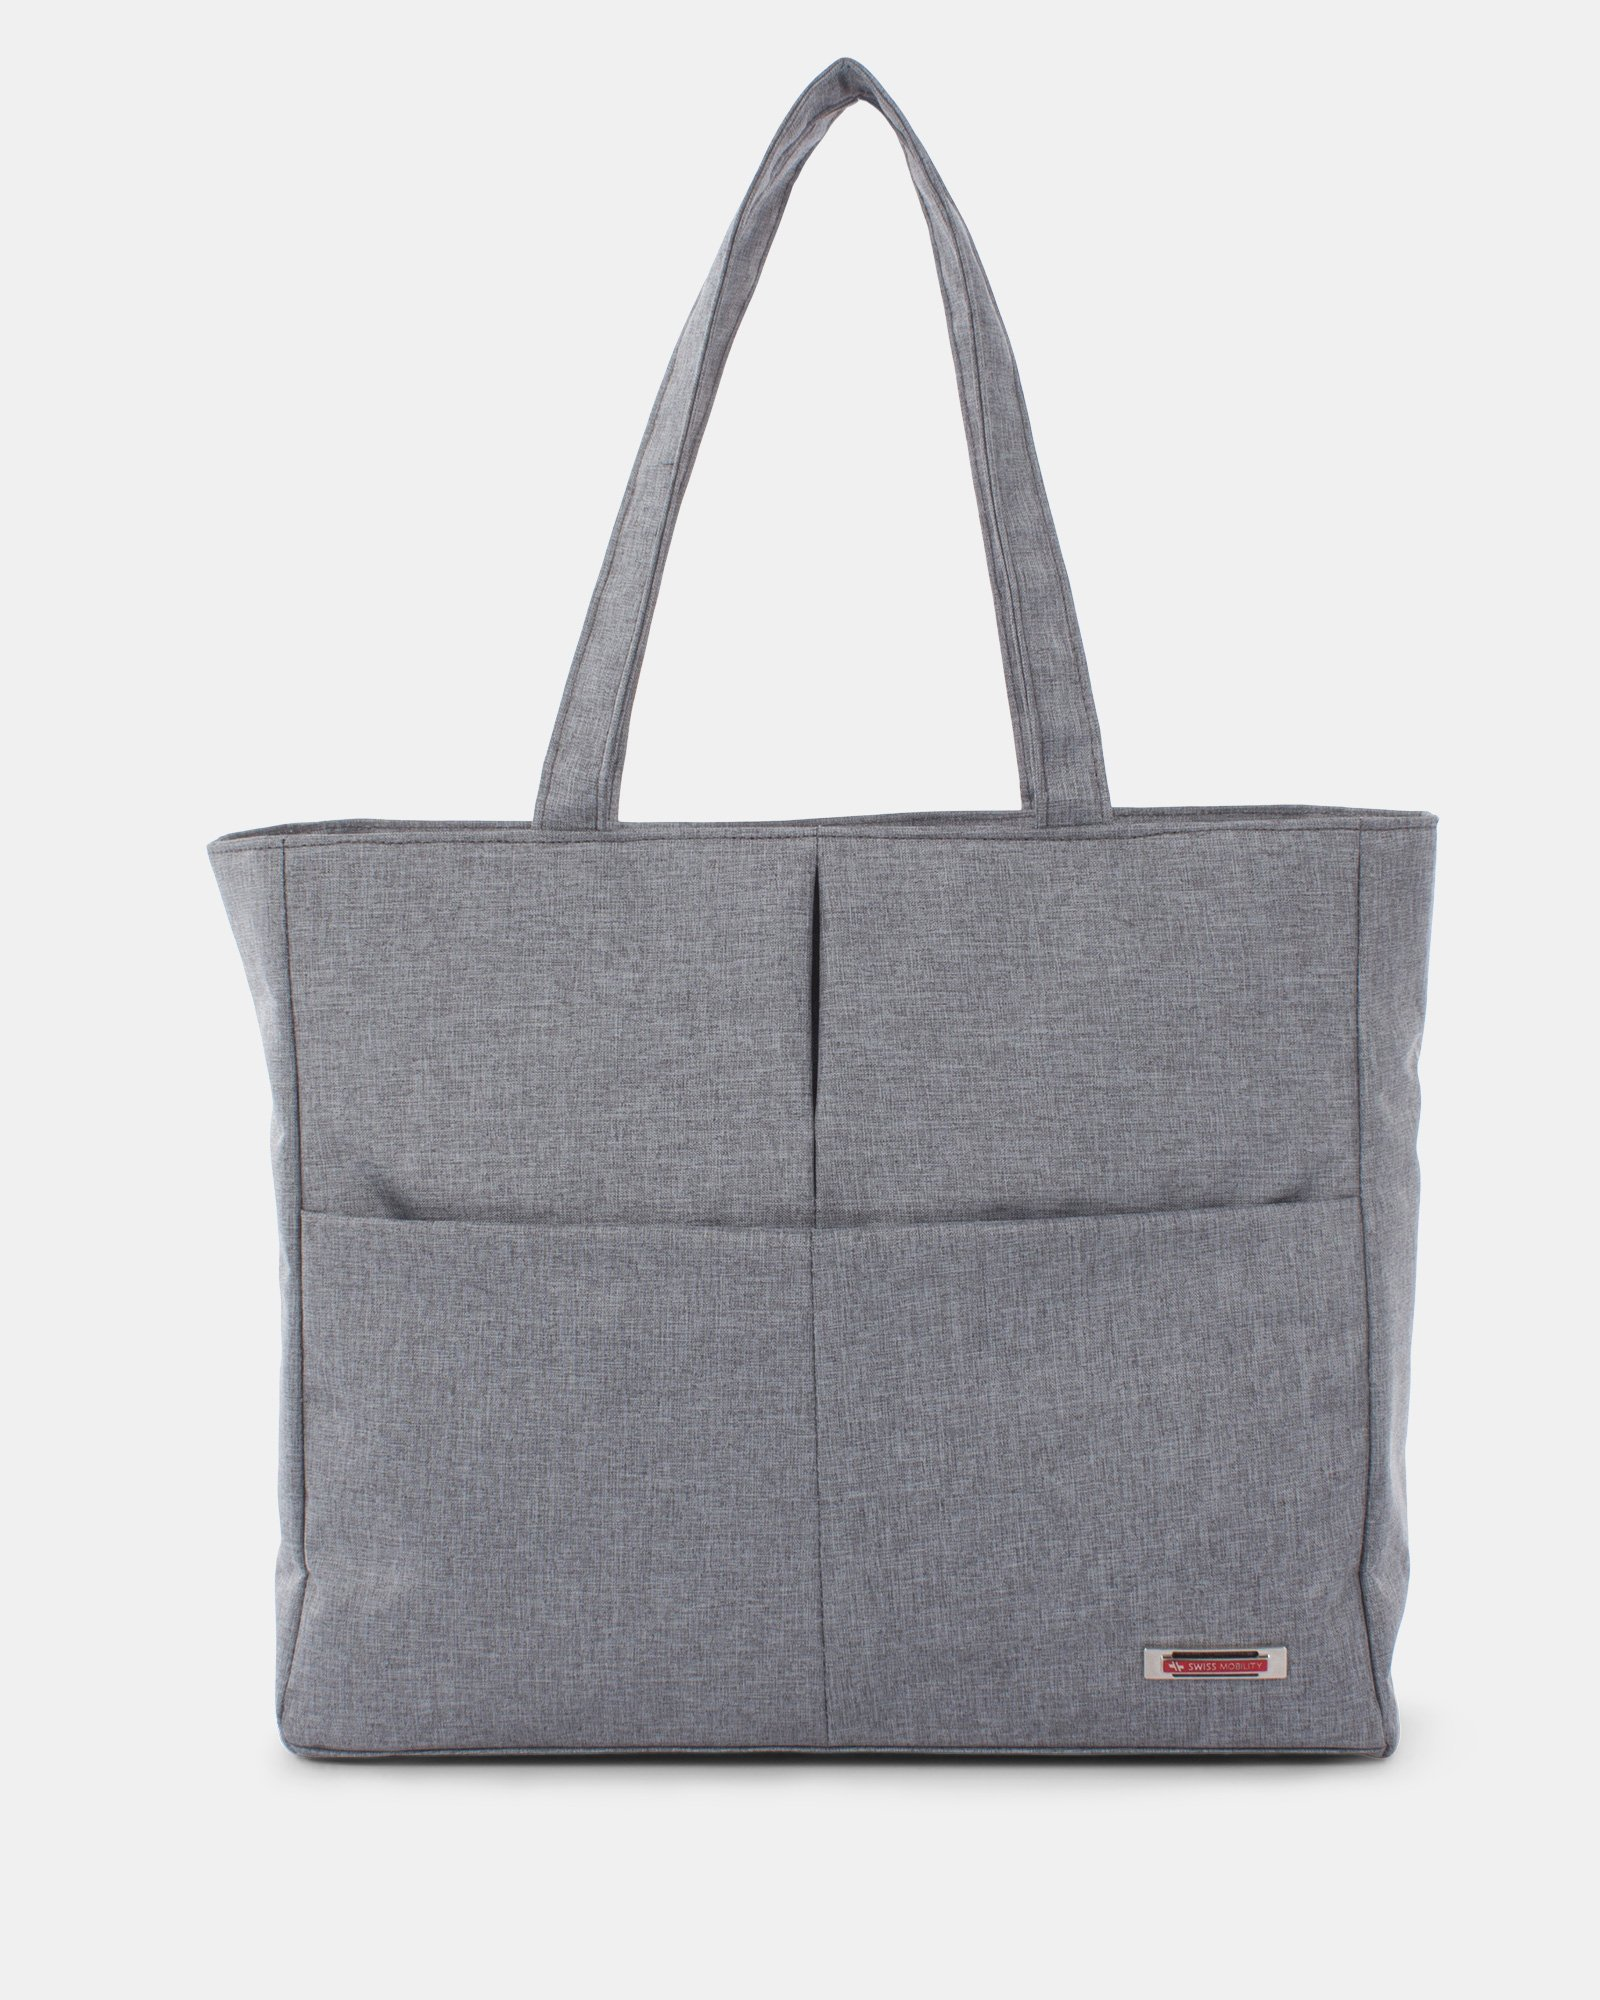 STERLING-Tote - Swiss Mobility - Zoom